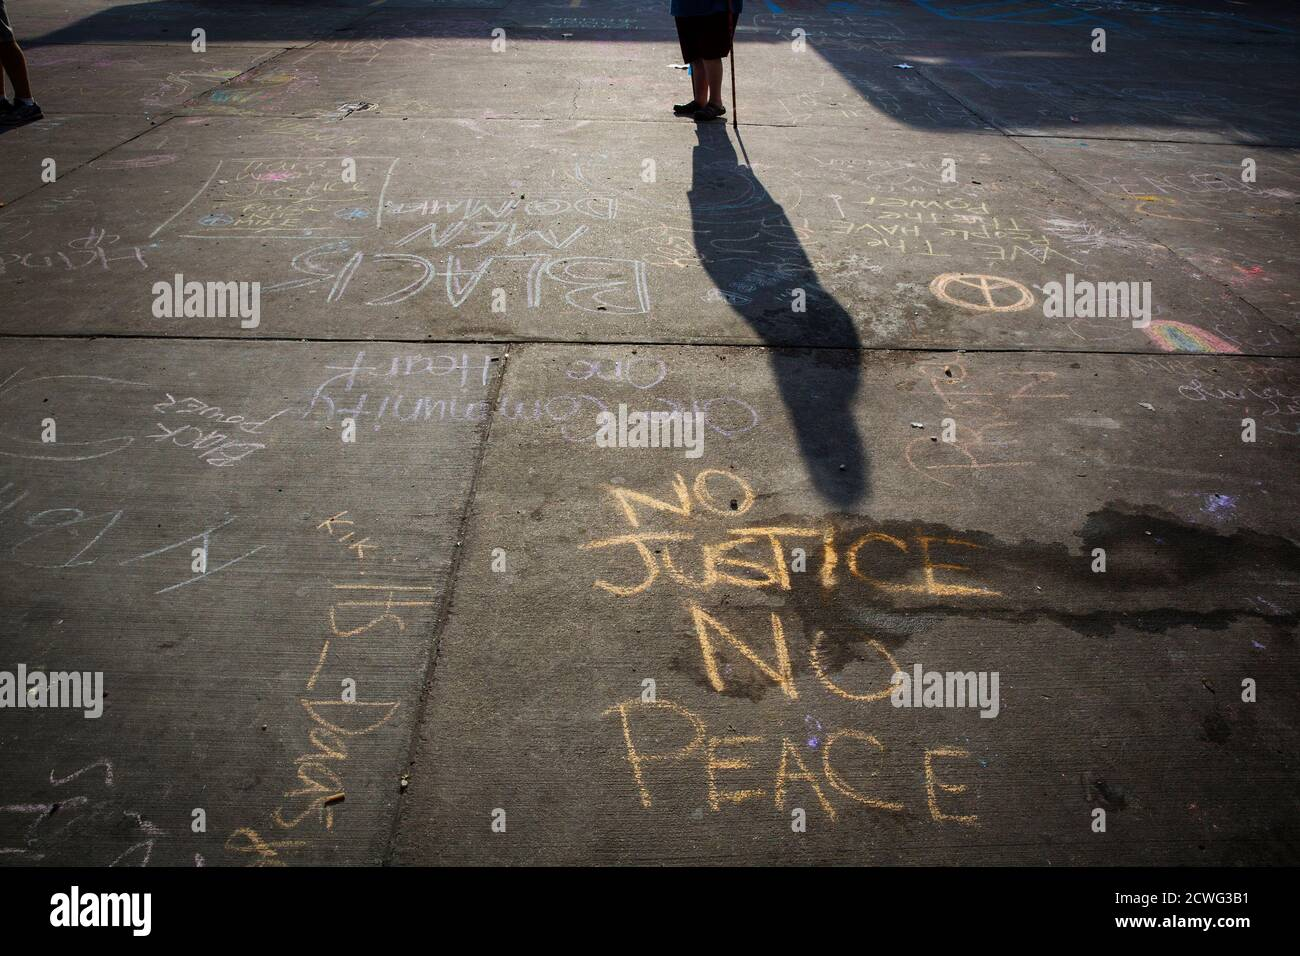 A man with a walking stick passes protest messages written in a parking lot before the announcement of the name of the officer involved in the shooting of Michael Brown in Ferguson, Missouri August 15, 2014. Police Chief Thomas Jackson on Friday identified Darren Wilson as the police officer who fatally shoot an unarmed black teenager, which led to days of sometimes-violent demonstrations. Jackson announced the name at a press conference held near a QuikTrip convenience store that had been burned amid protests over the shooting of Brown, 18, last Saturday.  REUTERS/Lucas Jackson (UNITED STATES Stock Photo